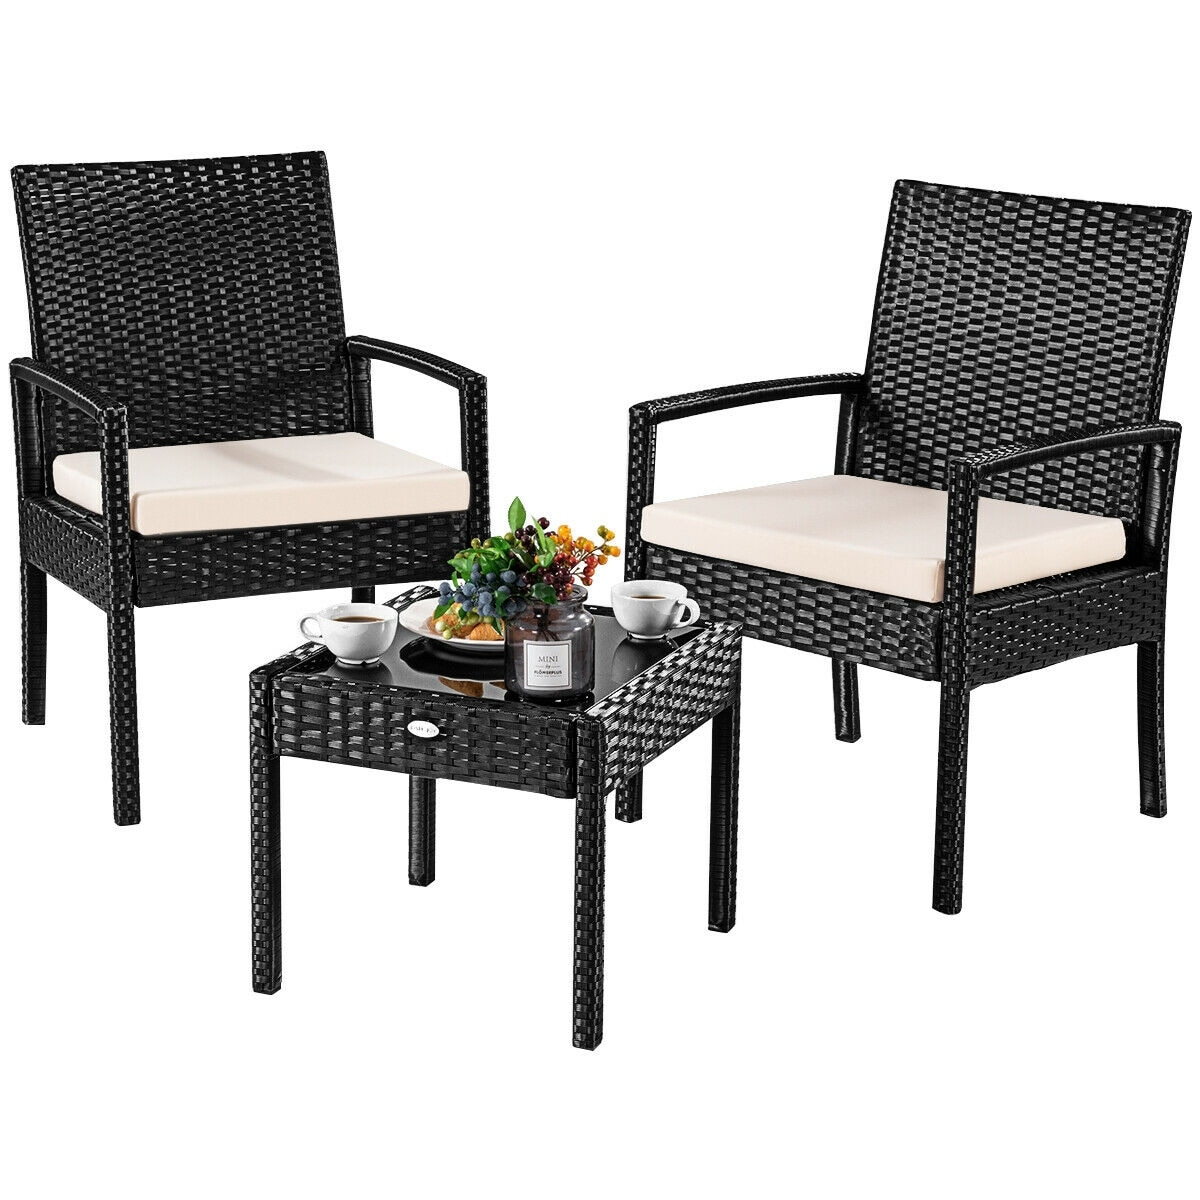 Brilliant Buy Outdoor Dining Sets Online At Overstock Our Best Patio Beatyapartments Chair Design Images Beatyapartmentscom